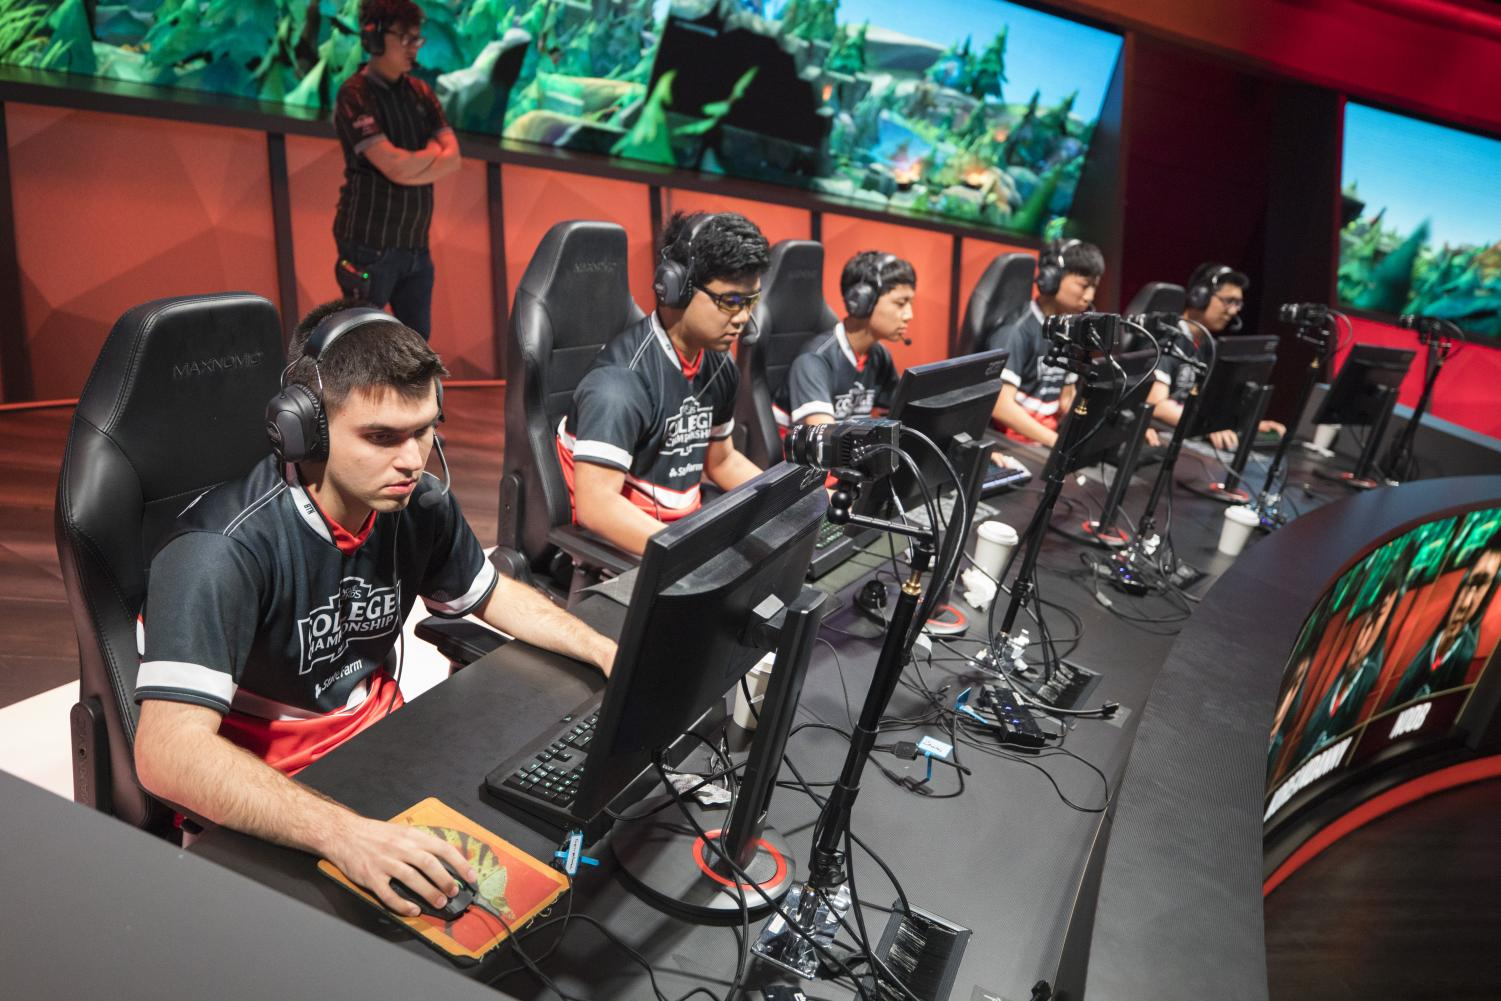 The Illini playing Maryville at the League of Legends College Championships in Los Angeles. Illinois will take on No. 5 seed Columbia in the semifinals on Saturday at 2 p.m. central time.